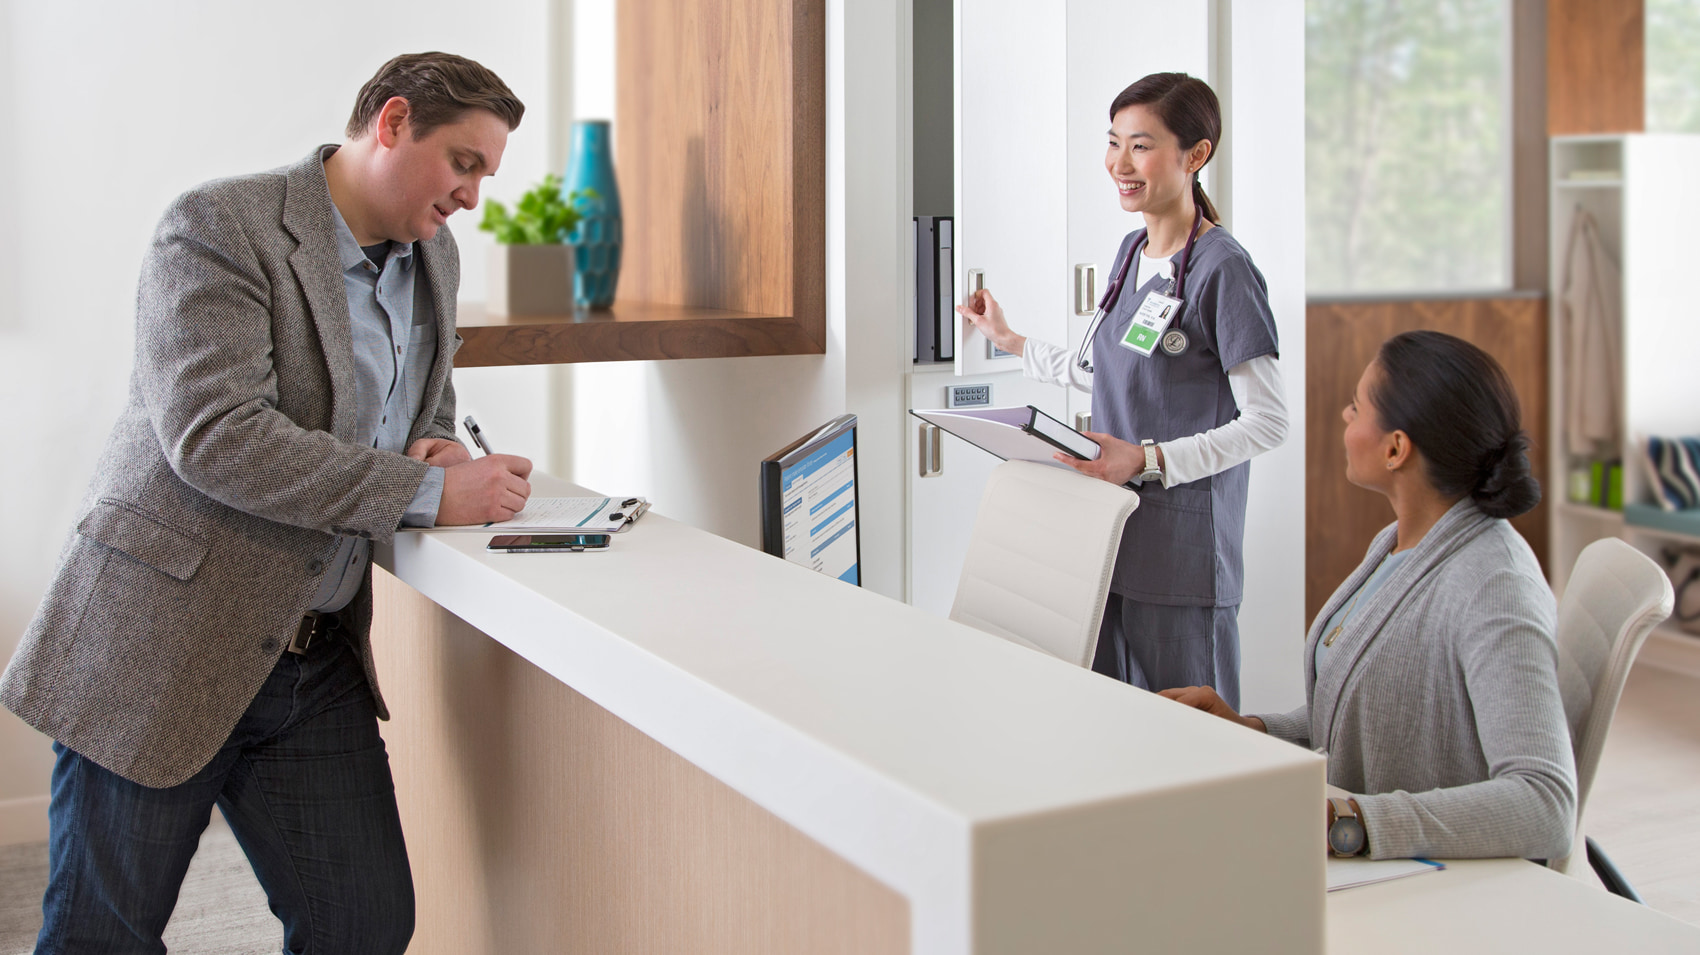 A man checking in at a clinic with a receptionist and medical personnel